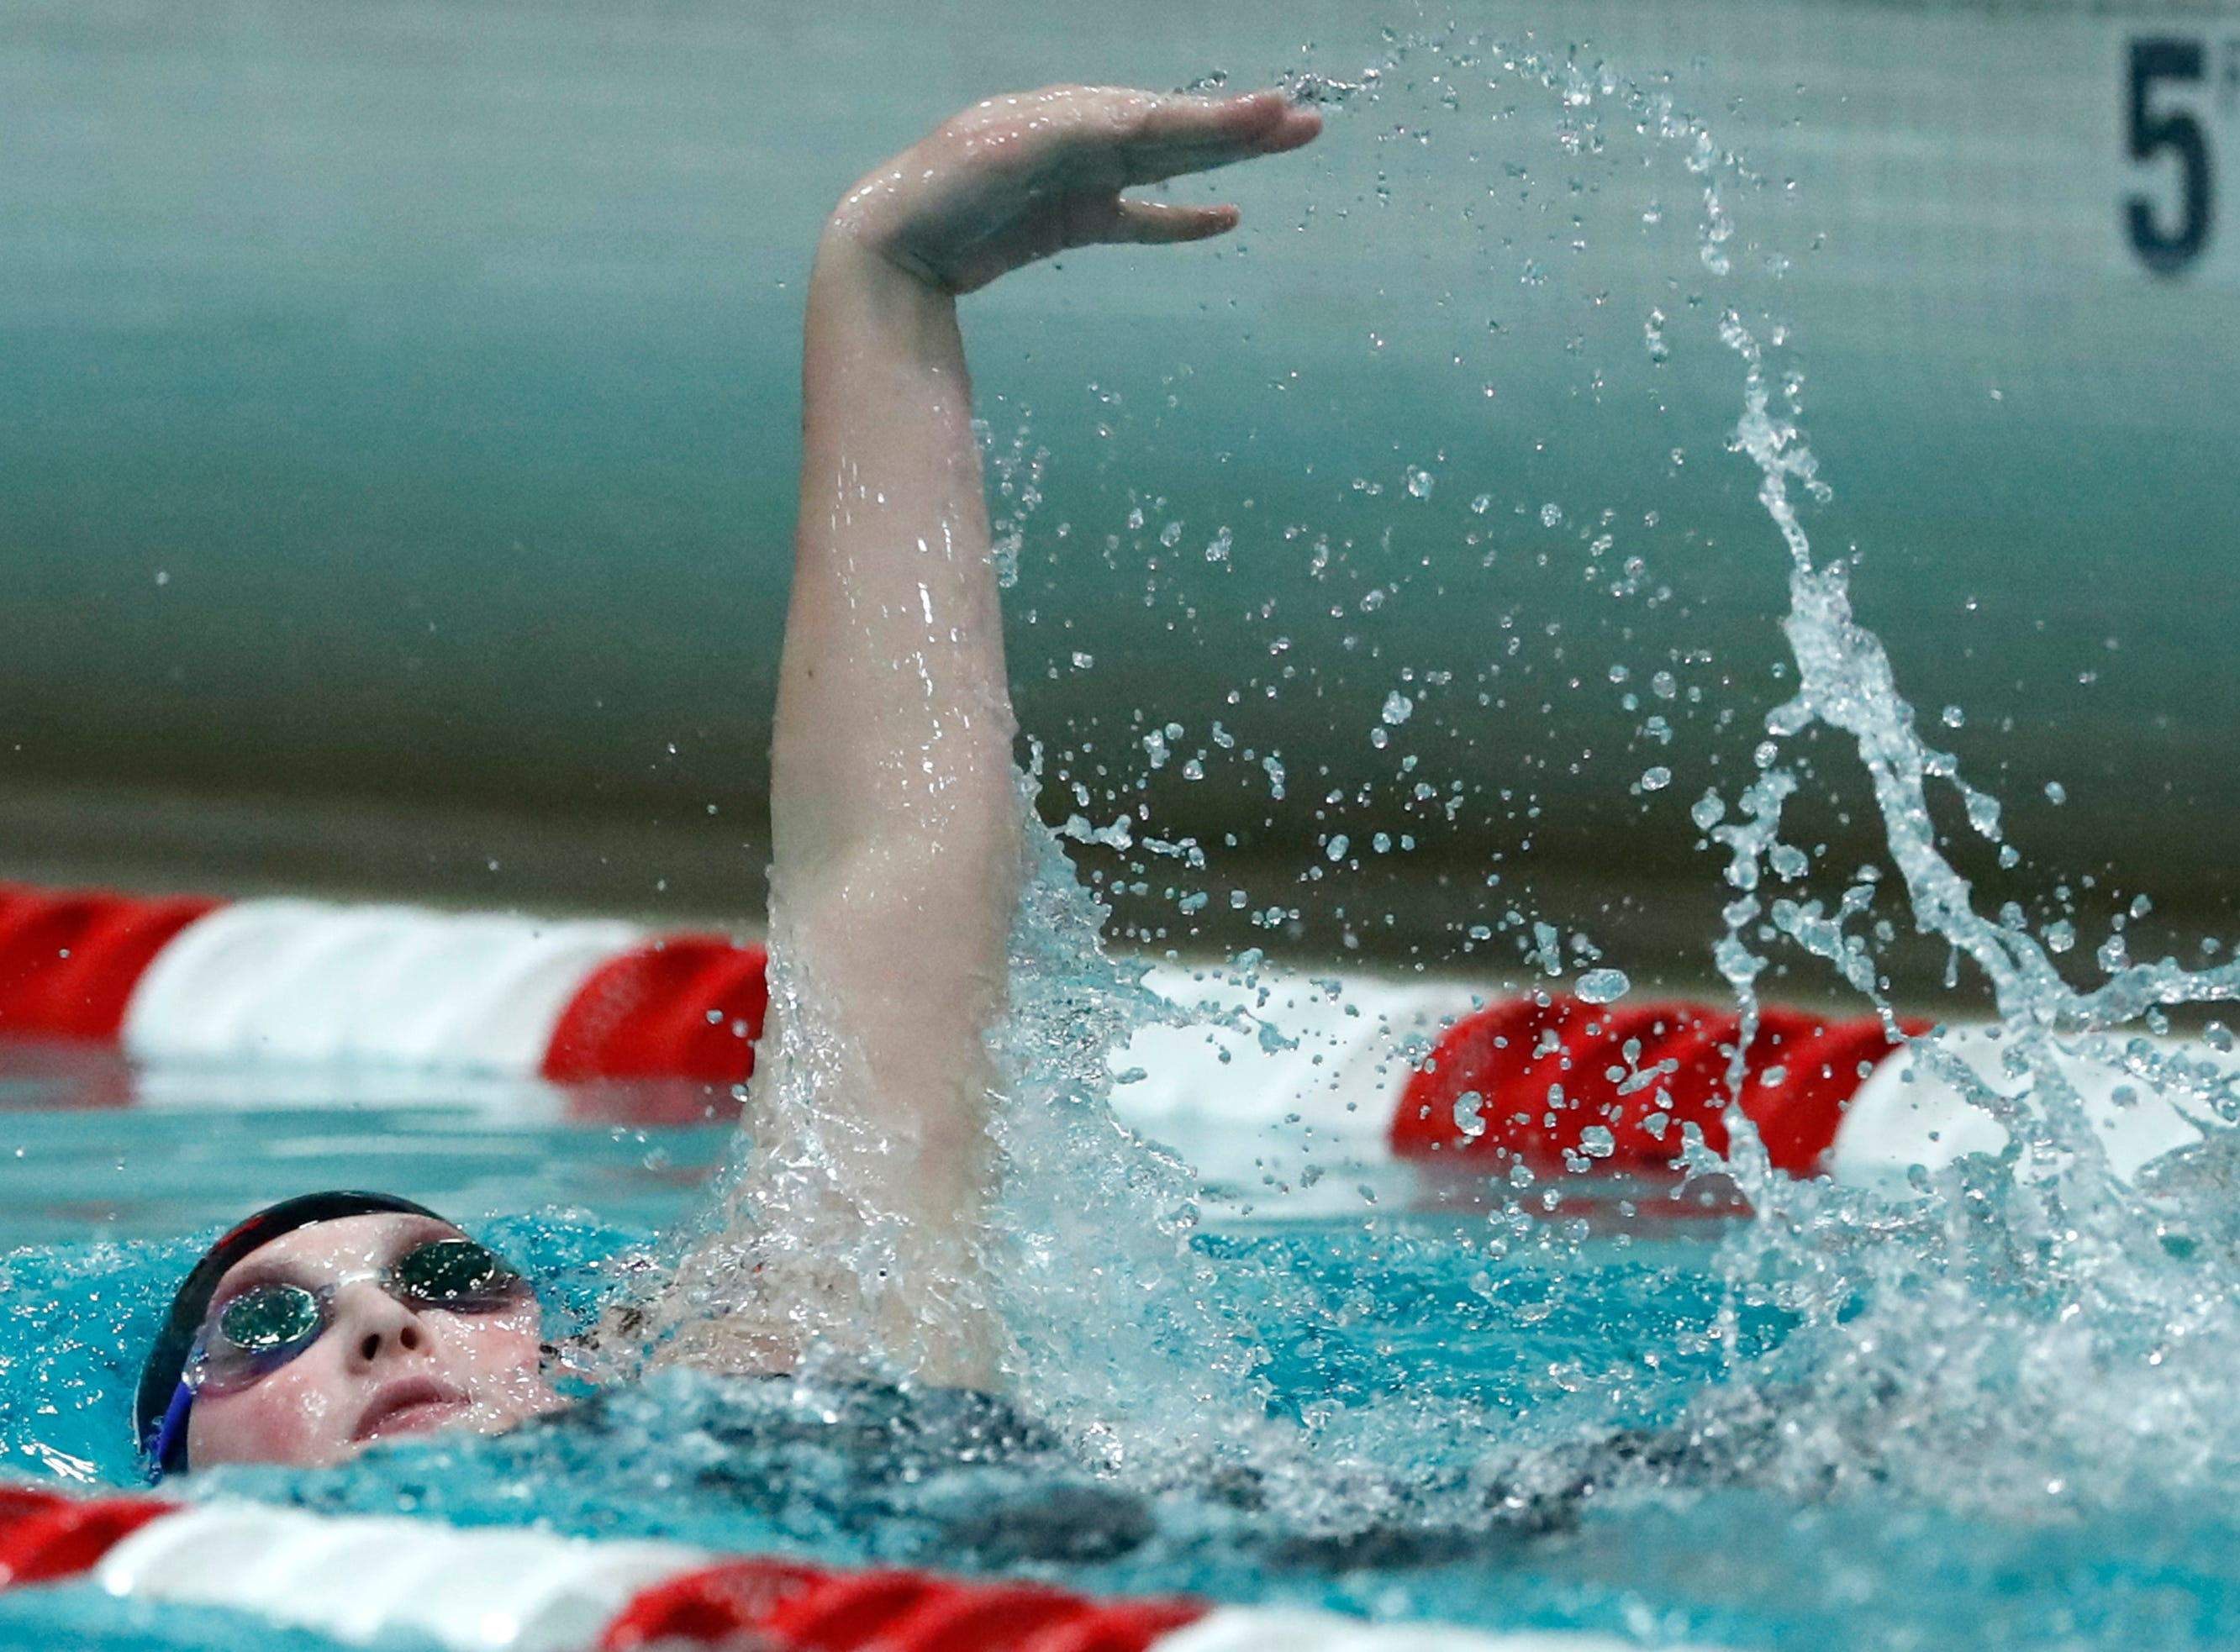 Sturgeon Bay Co-op's Abi Schauske races in the 200 yard individual medley during the WIAA Division 2 State Swimming and Diving meet Friday, Nov. 9, 2018, at the UW Natatorium in Madison, Wis.